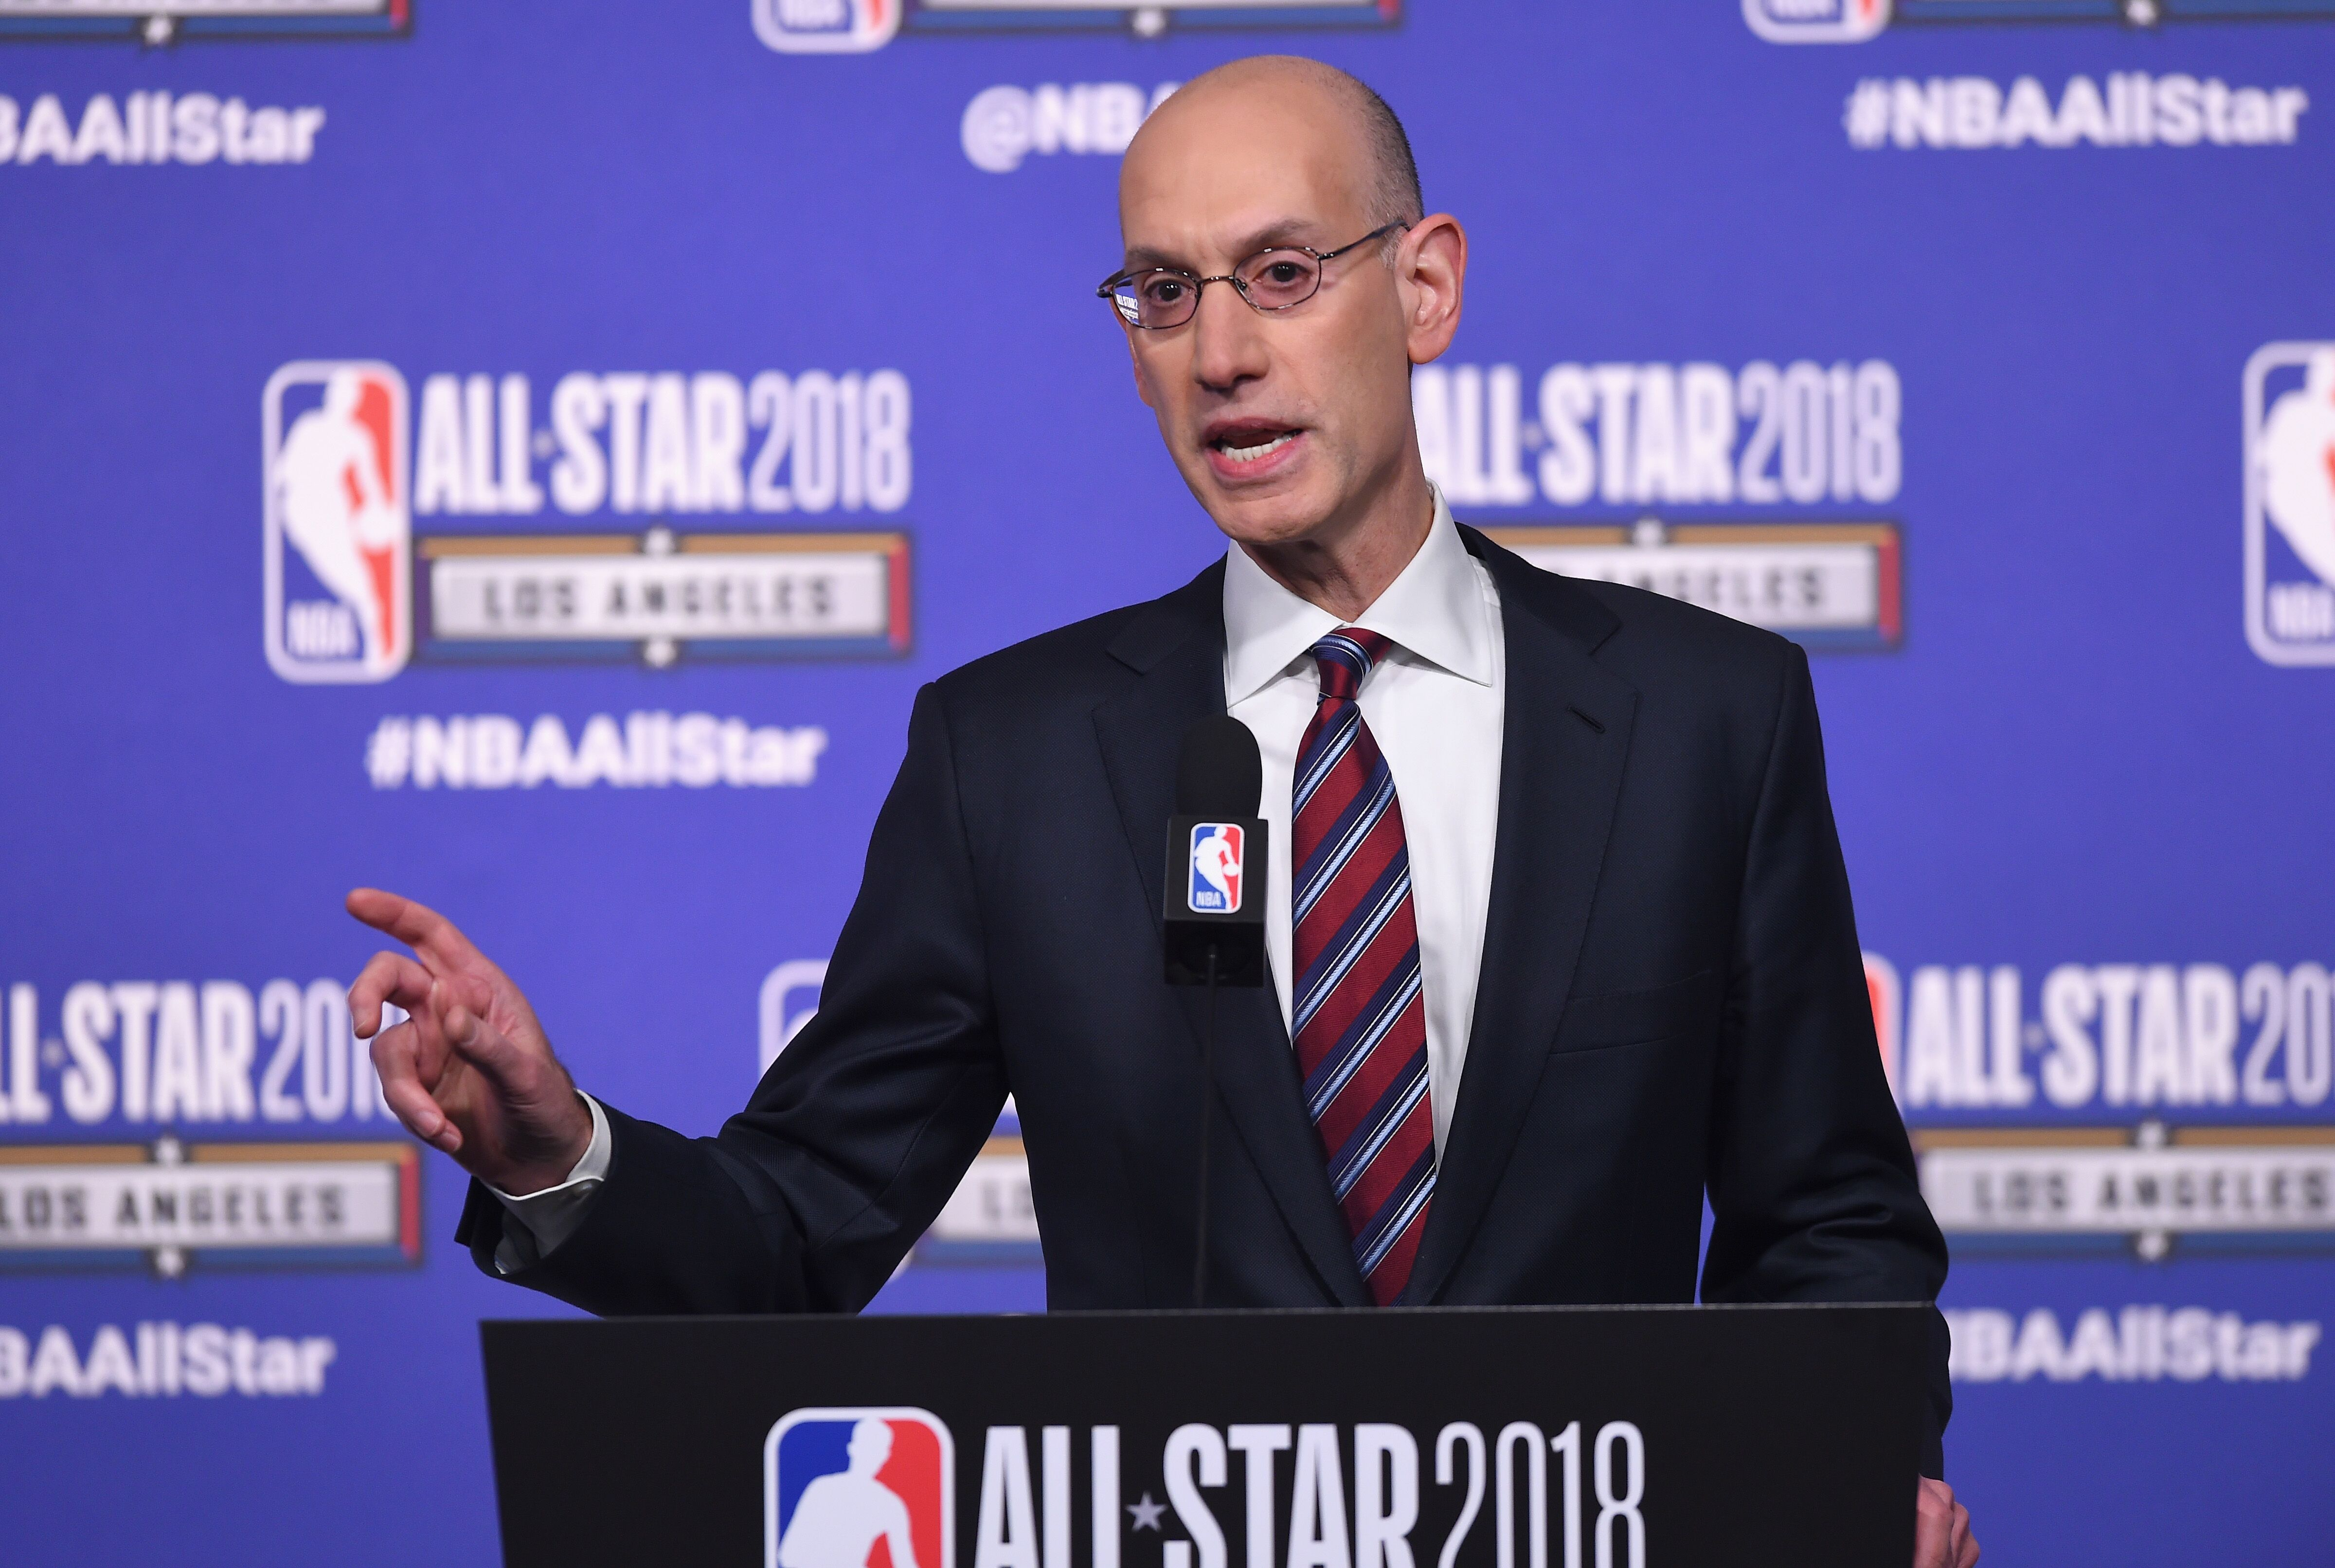 919675156-nba-all-star-game-2018-commissioner-adam-silver-press-conference.jpg